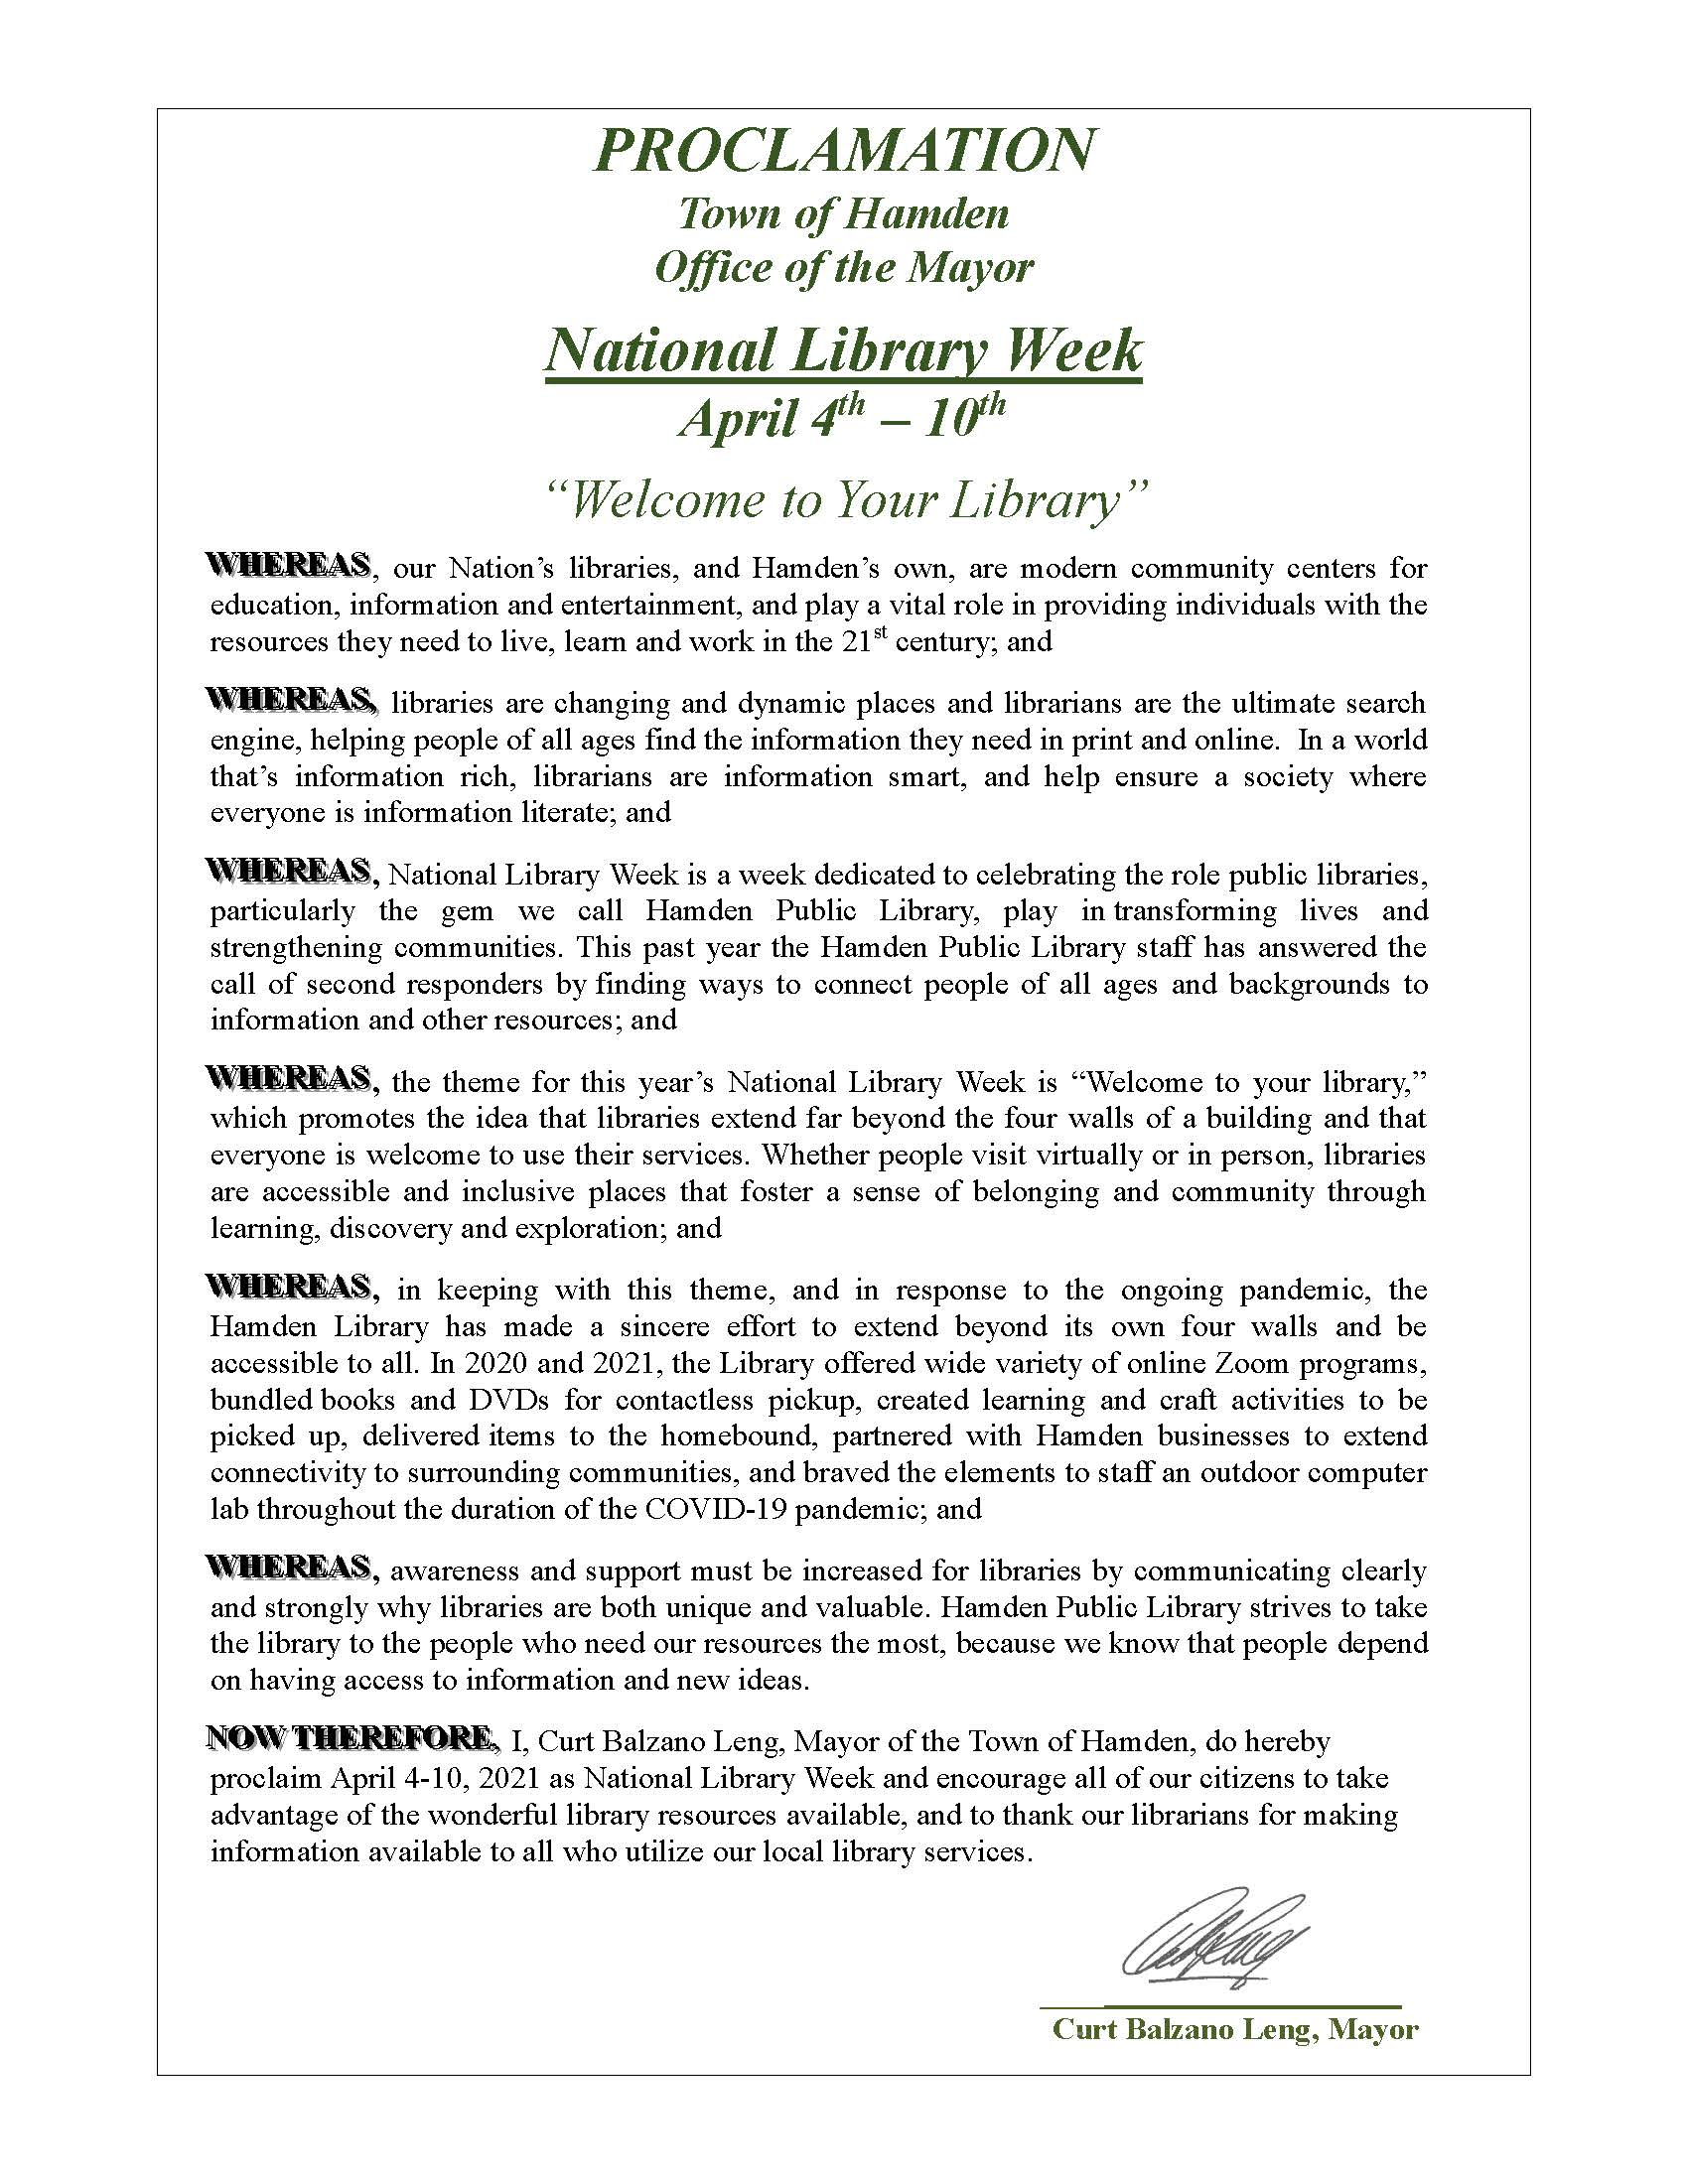 04-07-21 - Proc - National Library Week